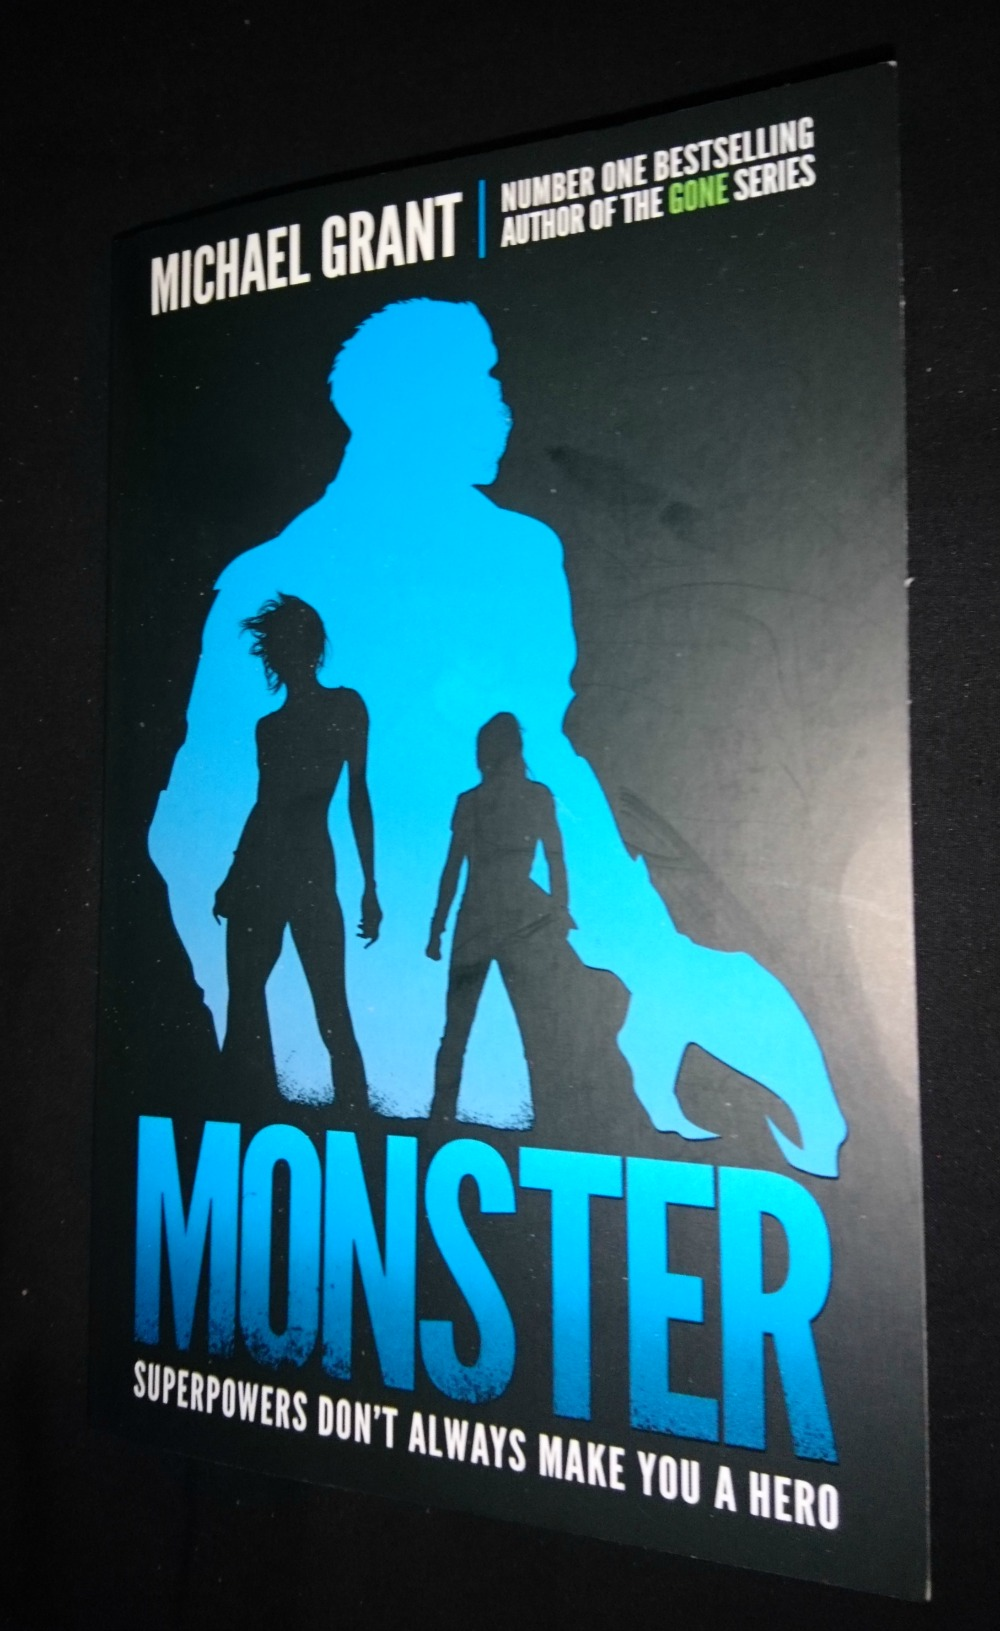 Monster by Michael Grant book cover